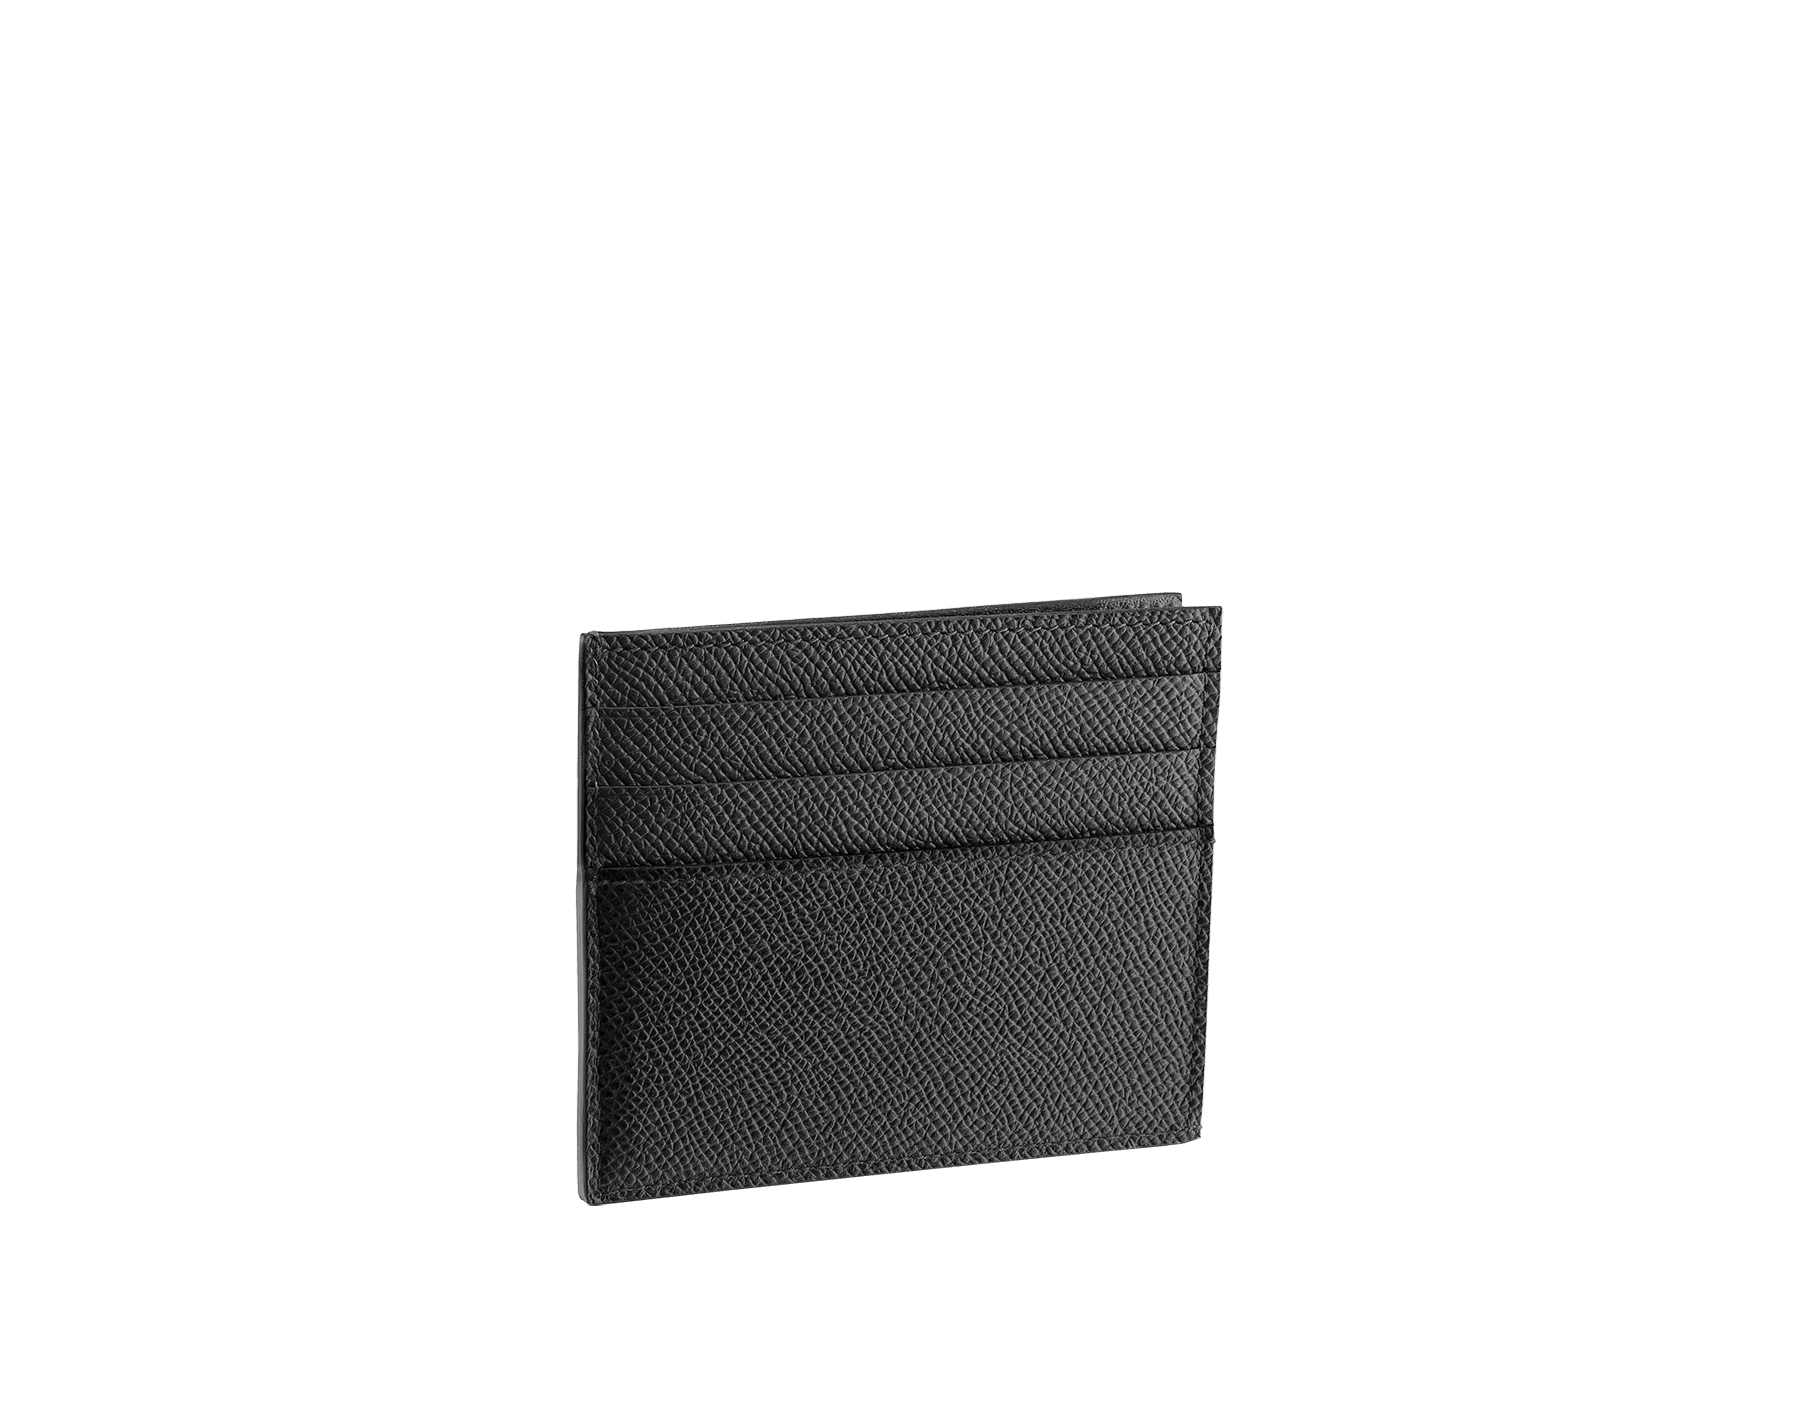 BVLGARI BVLGARI open credit card holder in black grain calf leather and black nappa lining. Iconic logo décor in palladium plated brass. 288524 image 2